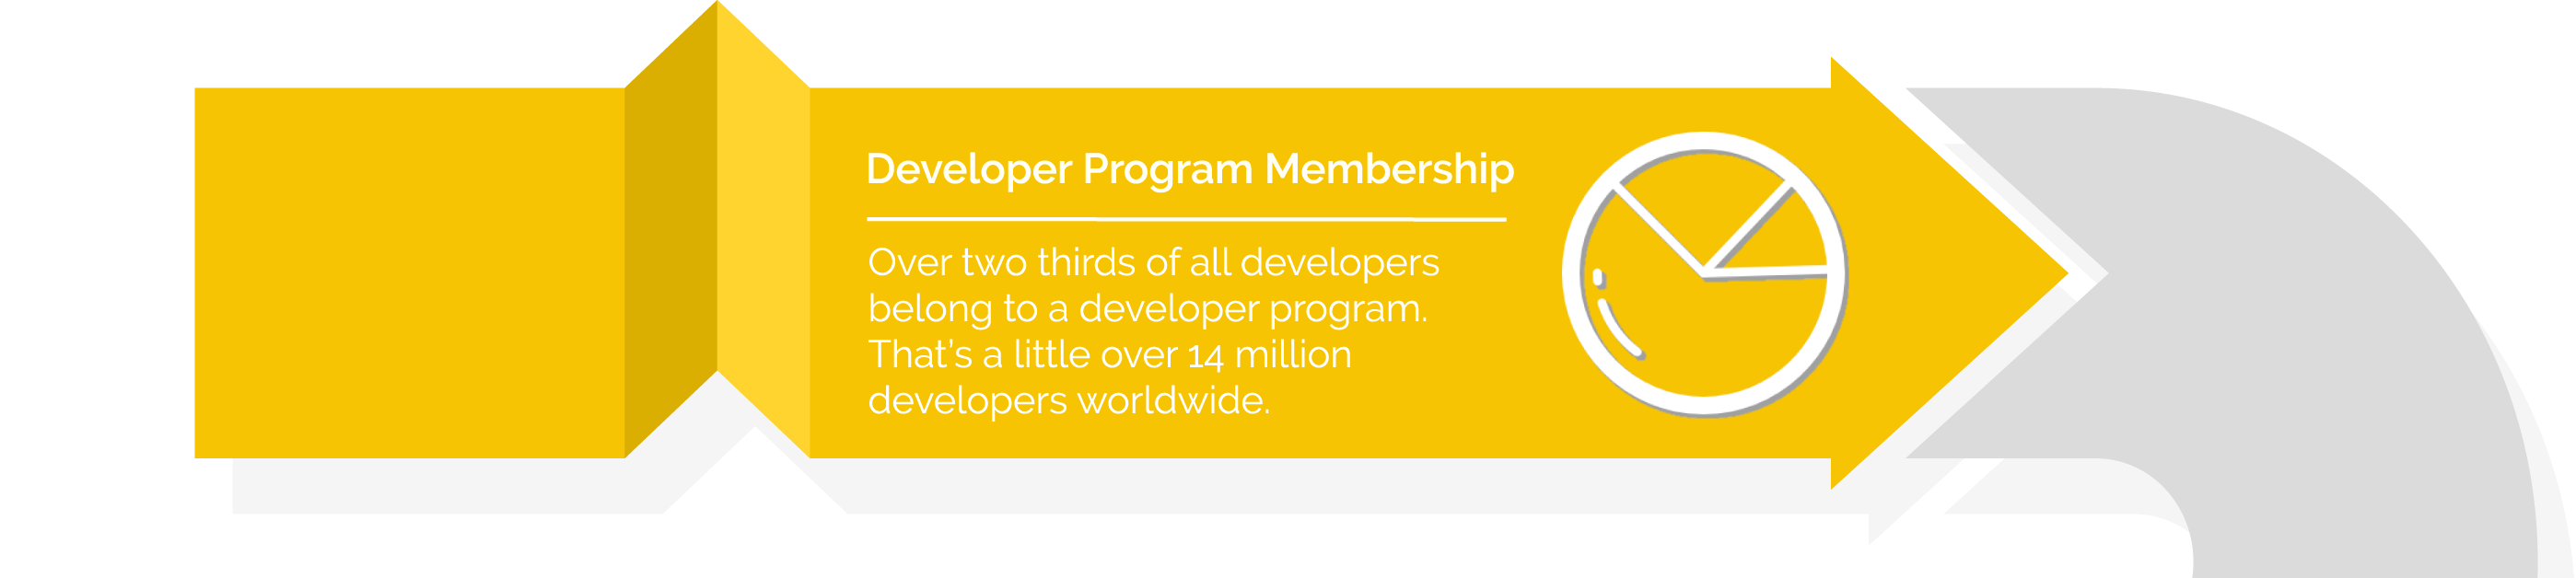 Over two thirds of all developers belong to a developer program. That's a little over 14 million developers worldwide.